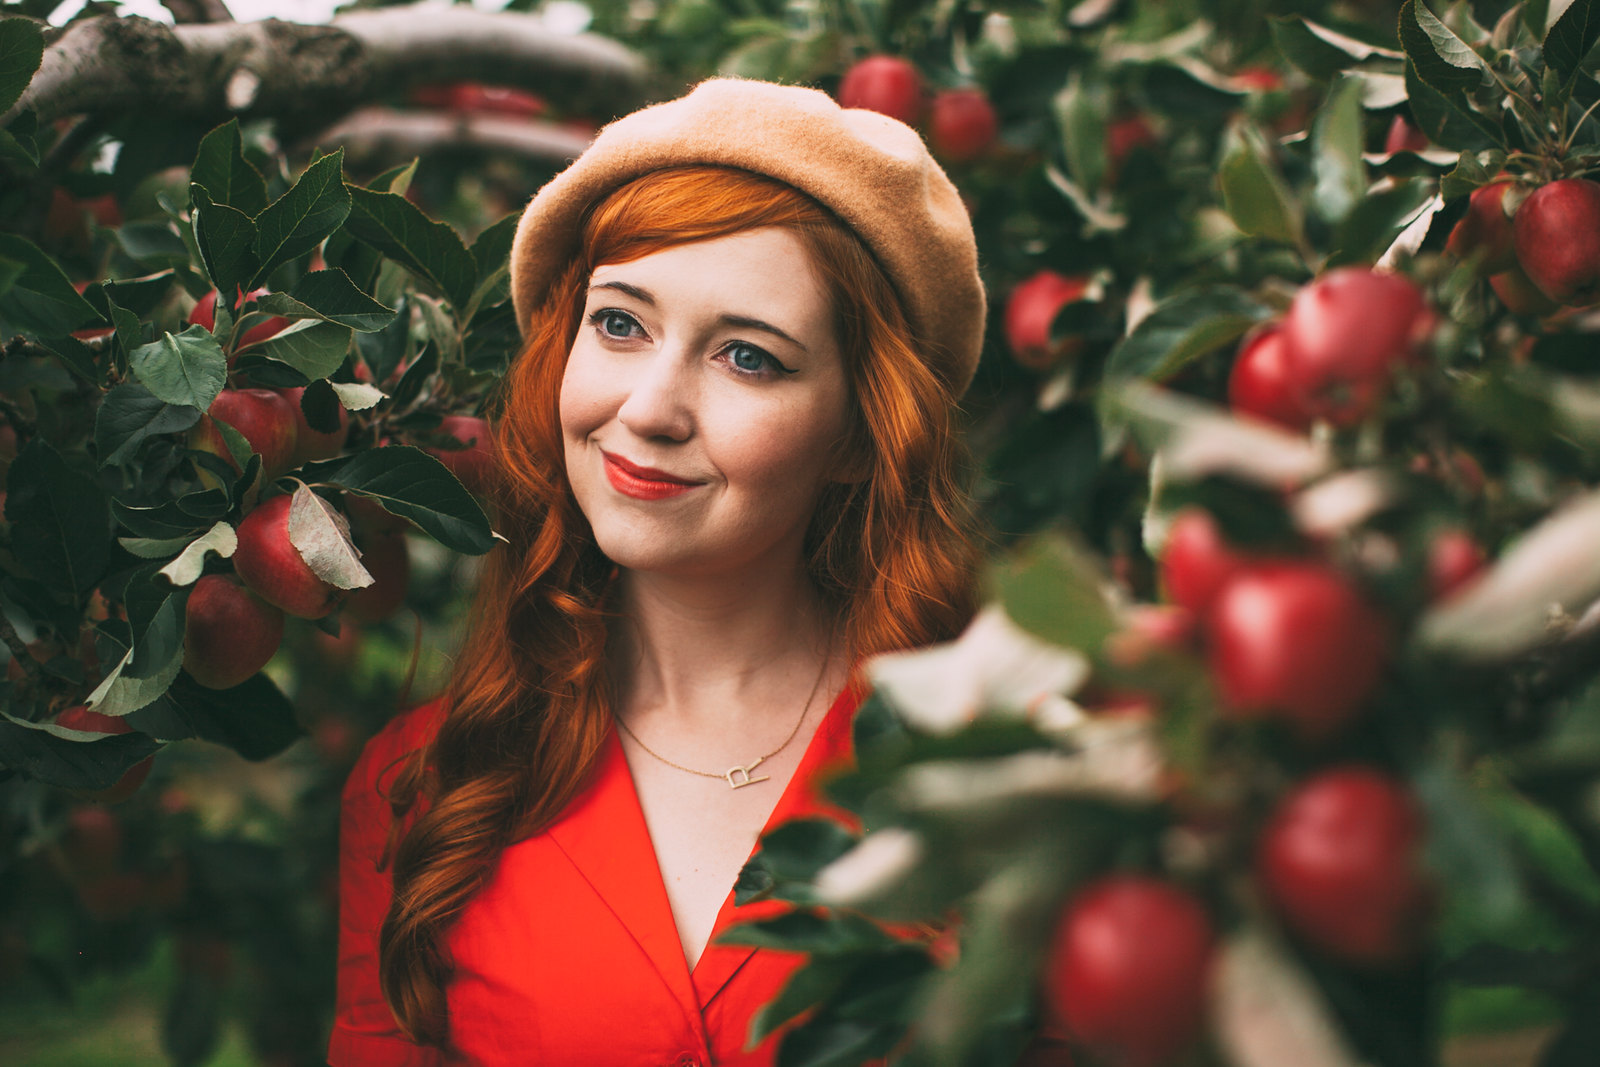 red apples-38